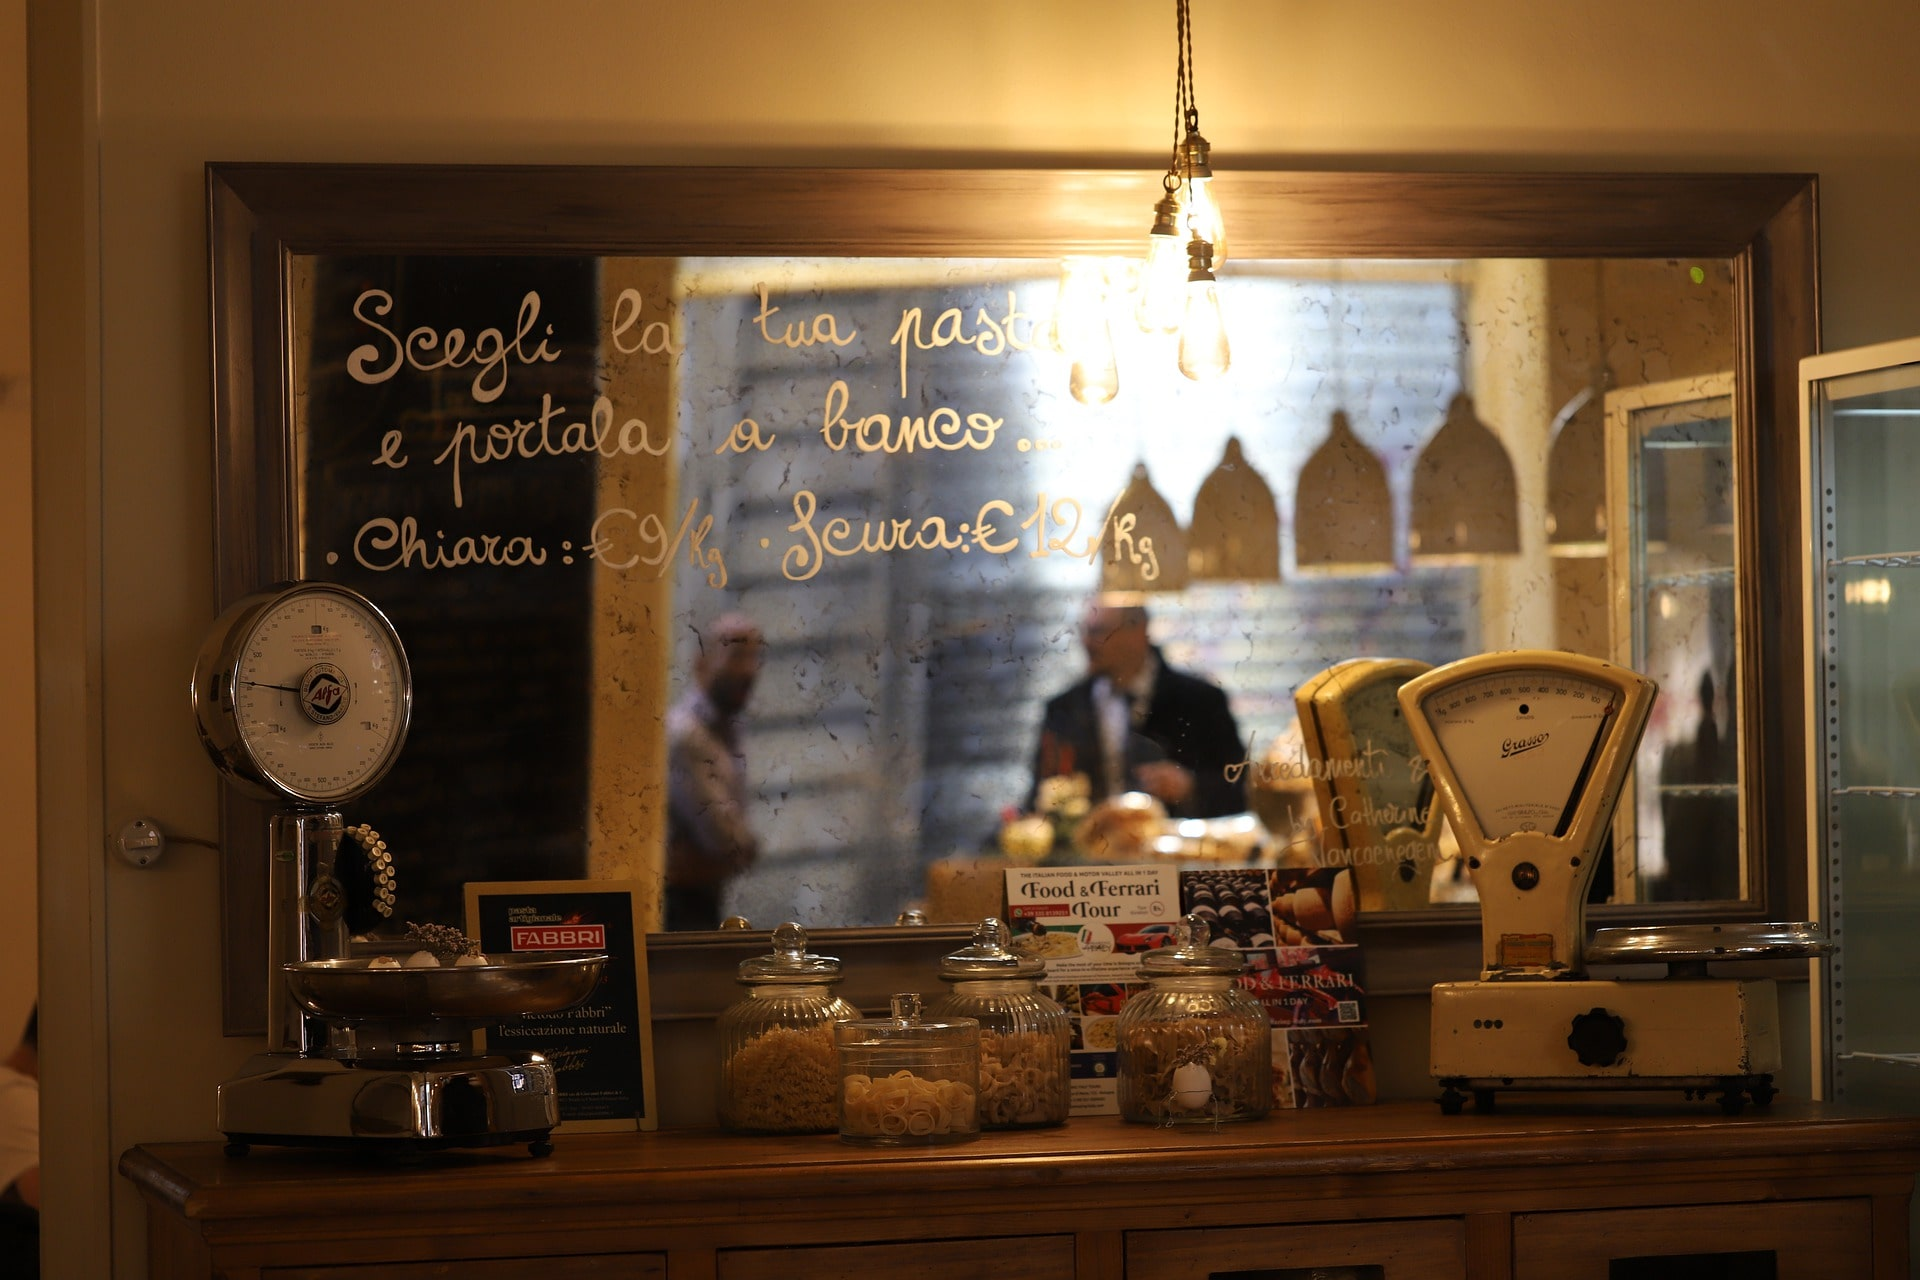 Where to stay in Italy for great food? Bologna!